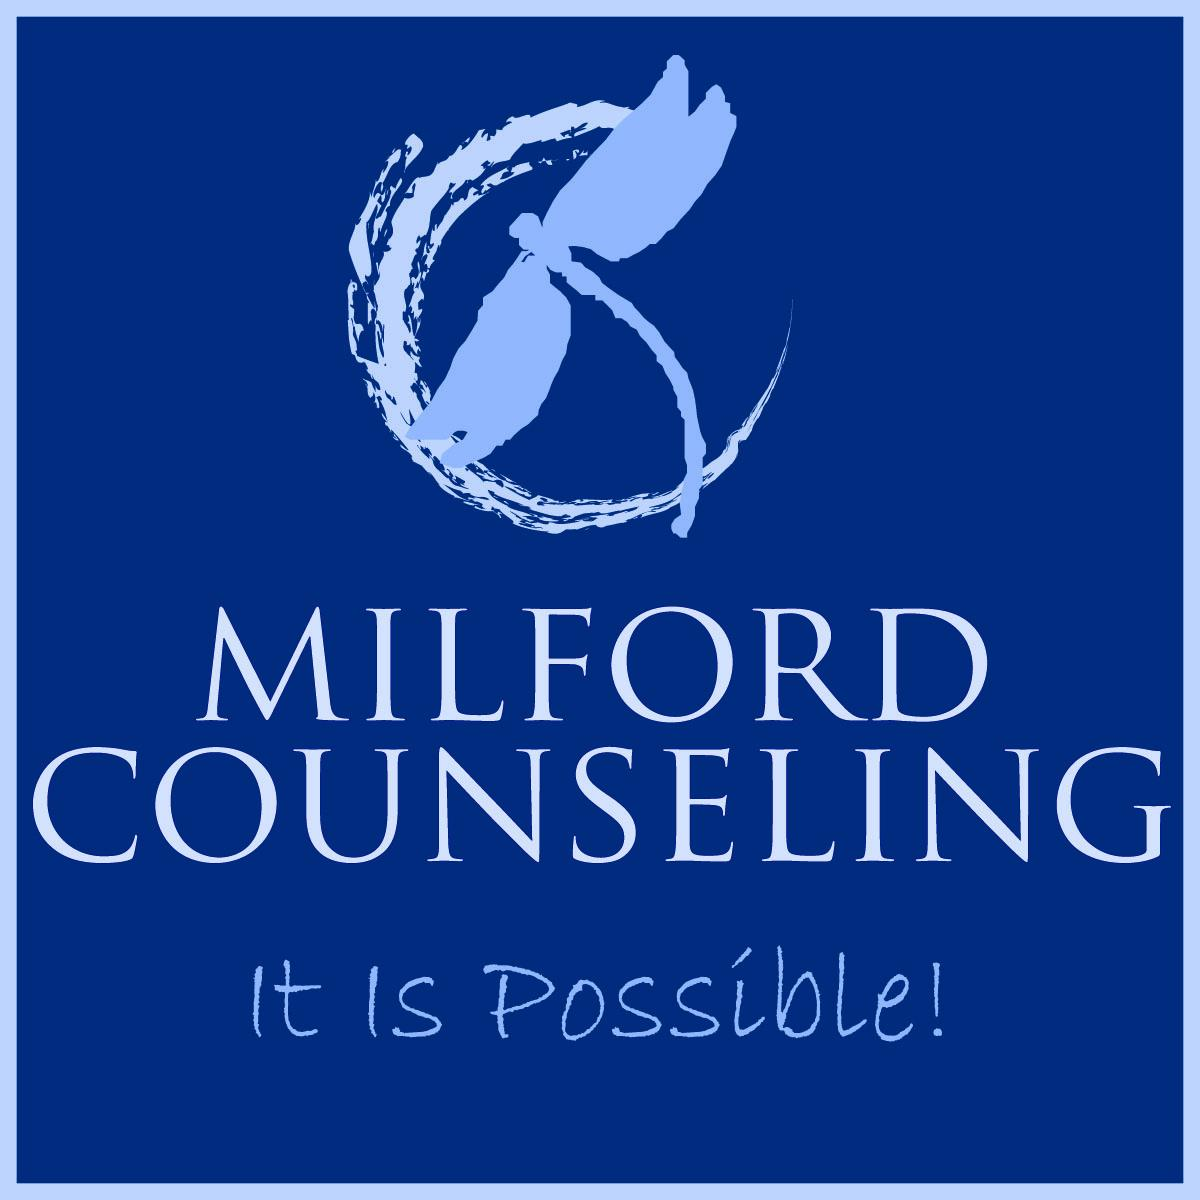 Milford Counseling